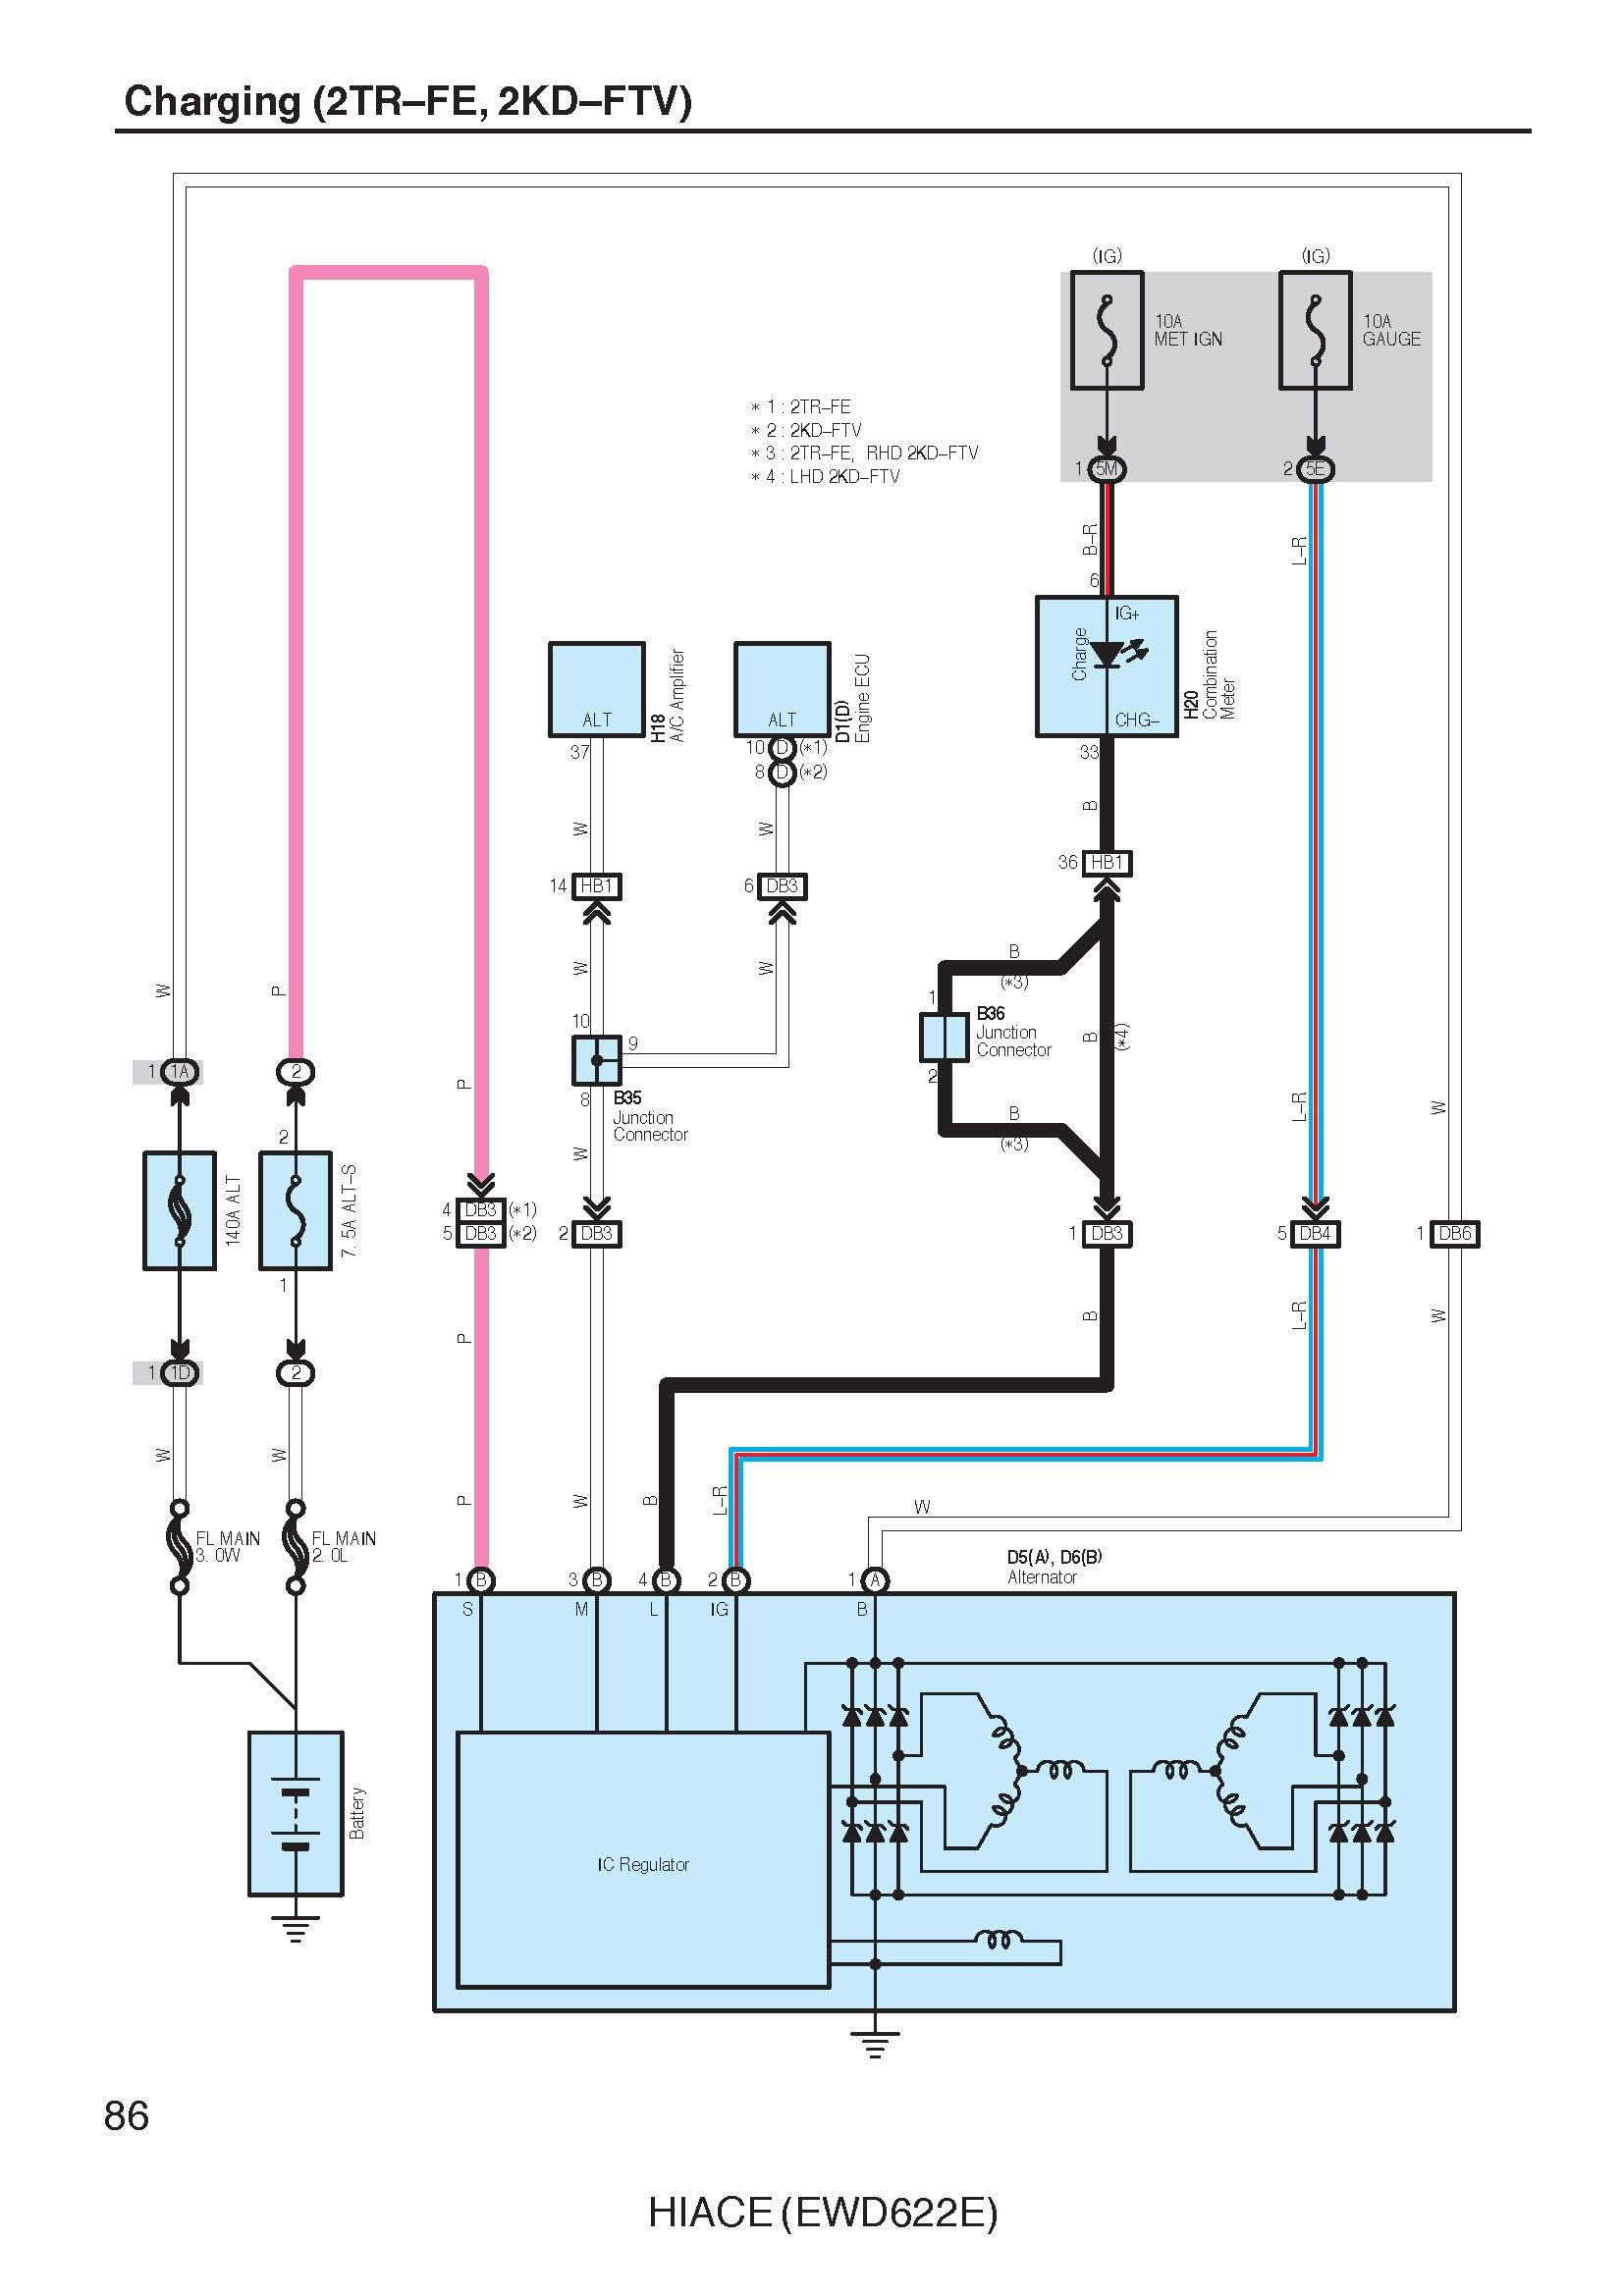 av wiring schematic for auditorium system integration portfolio av wiring schematic for auditorium system integration portfolio audio visual schematic drawing drawings service design